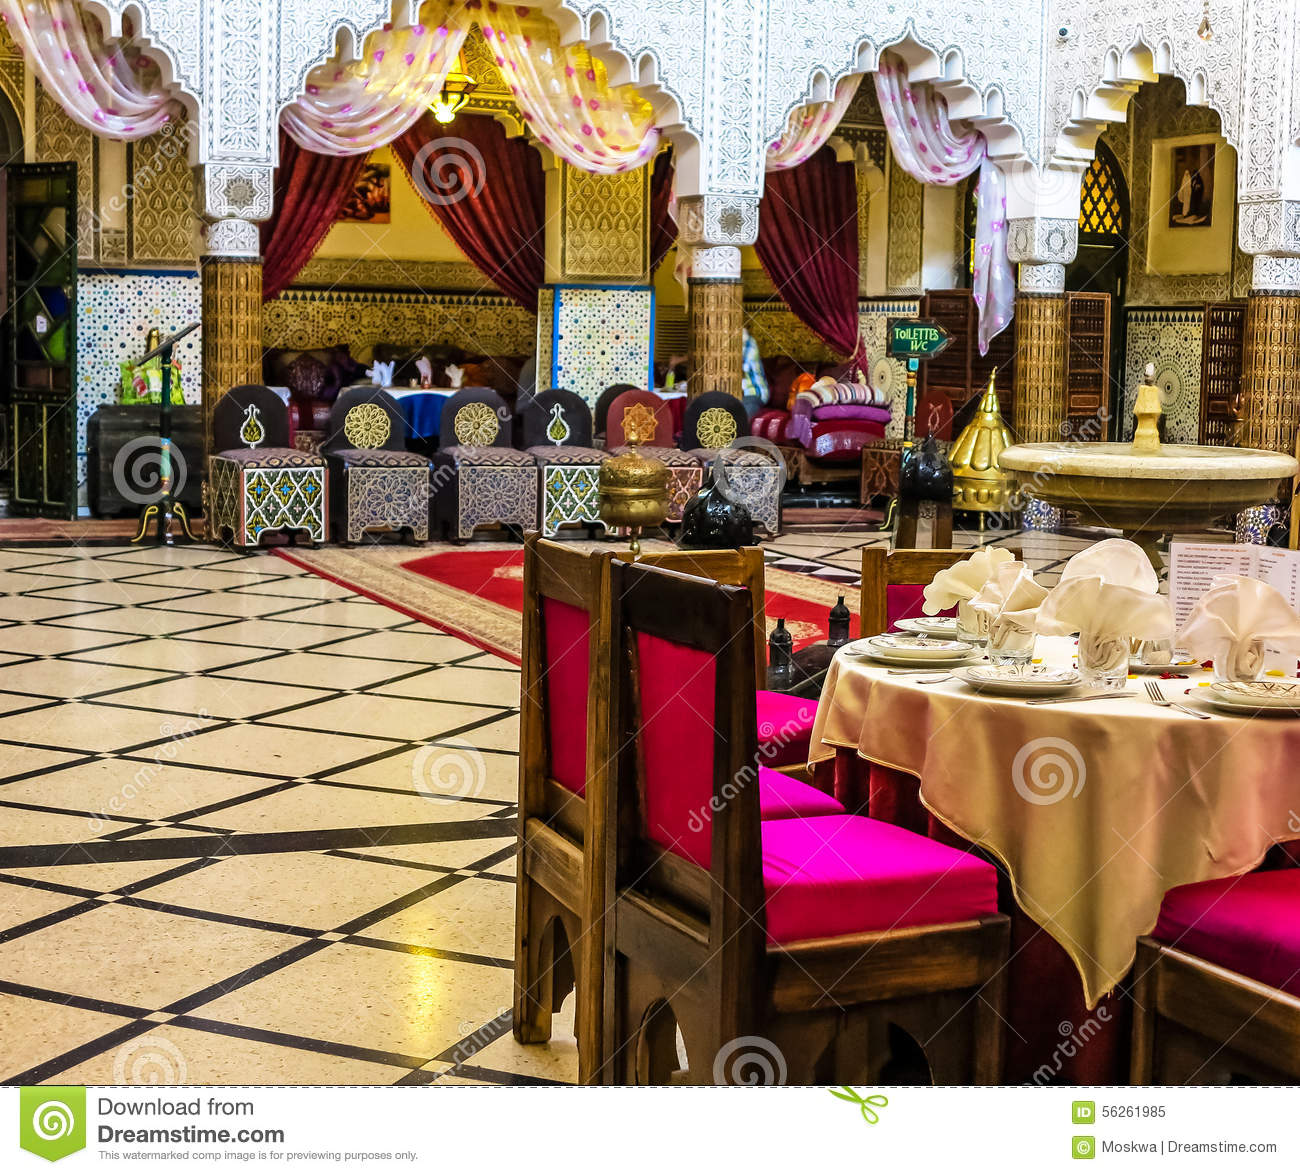 Moroccan palace stock photo 1828278 for Comedor waterdog royal house